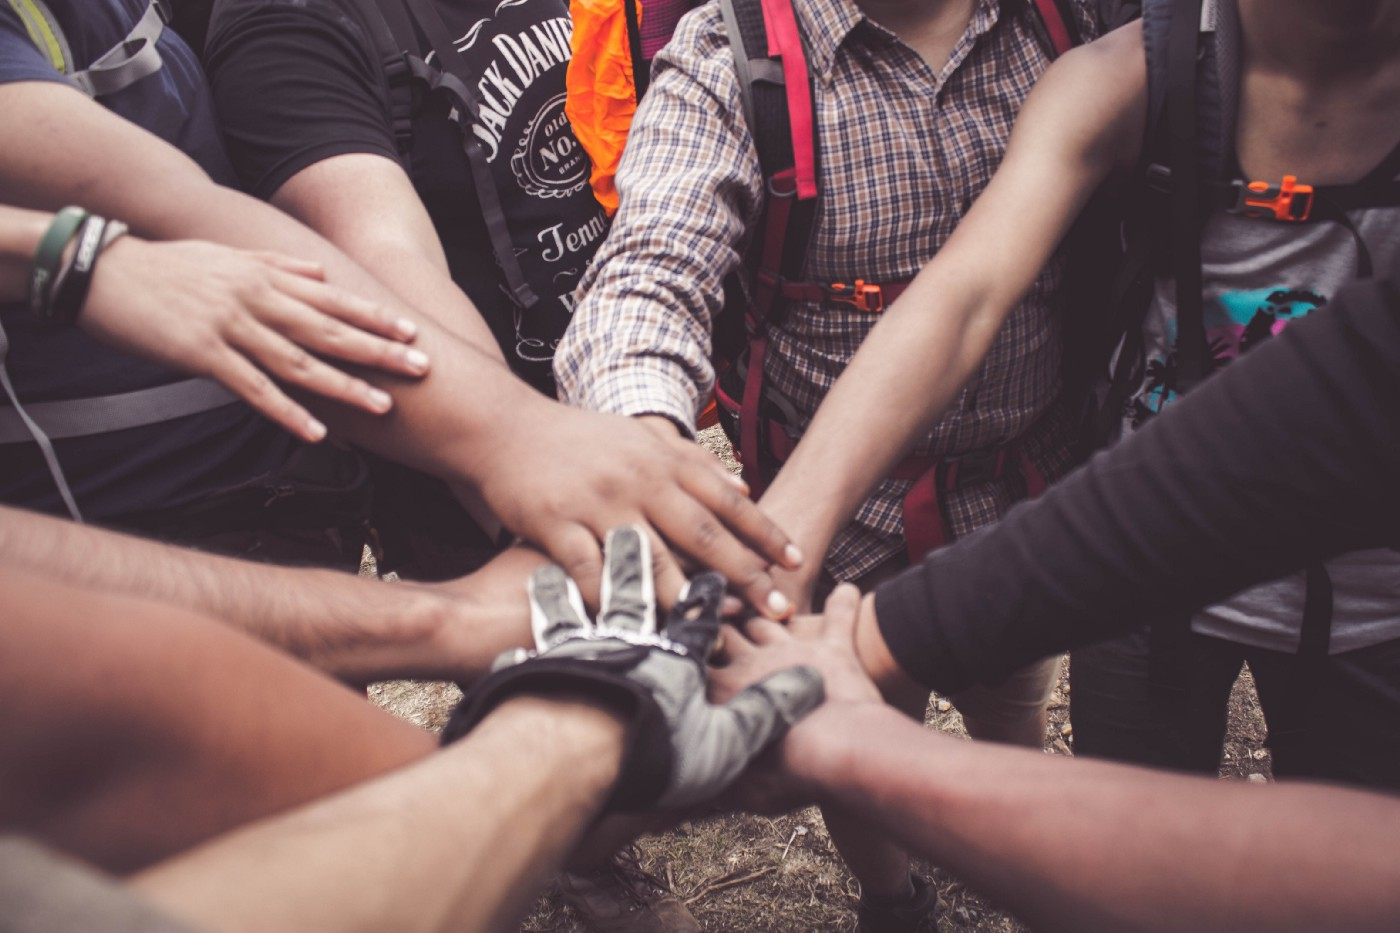 Photo of a group with all their hands reaching towards the middle in a huddle.